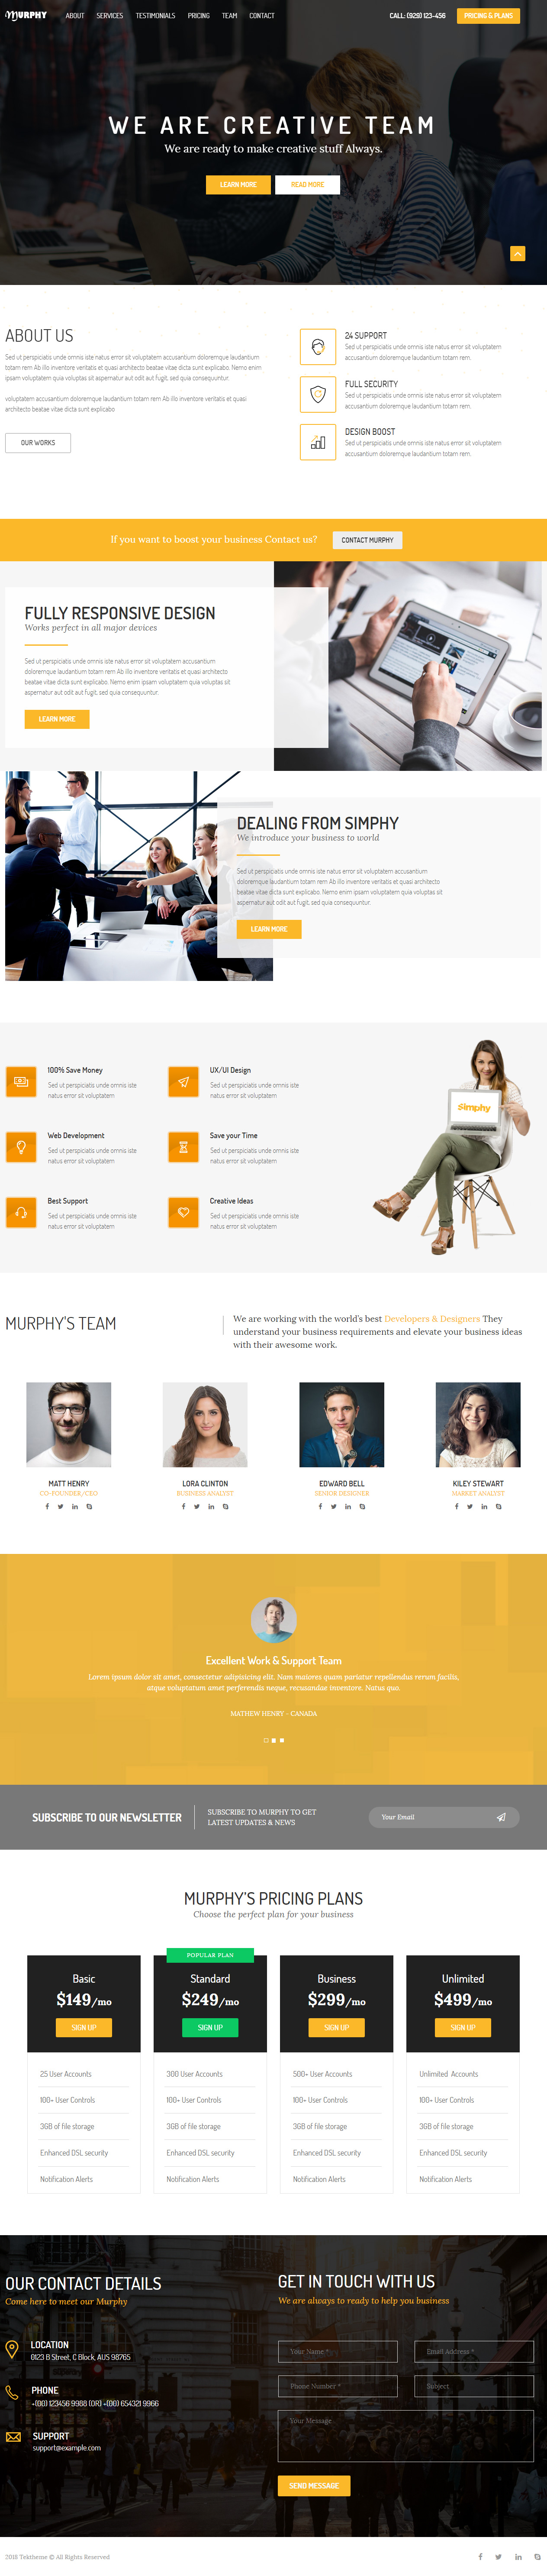 15 Best Adobe Muse Parallax Templates 2018 Responsive Miracle